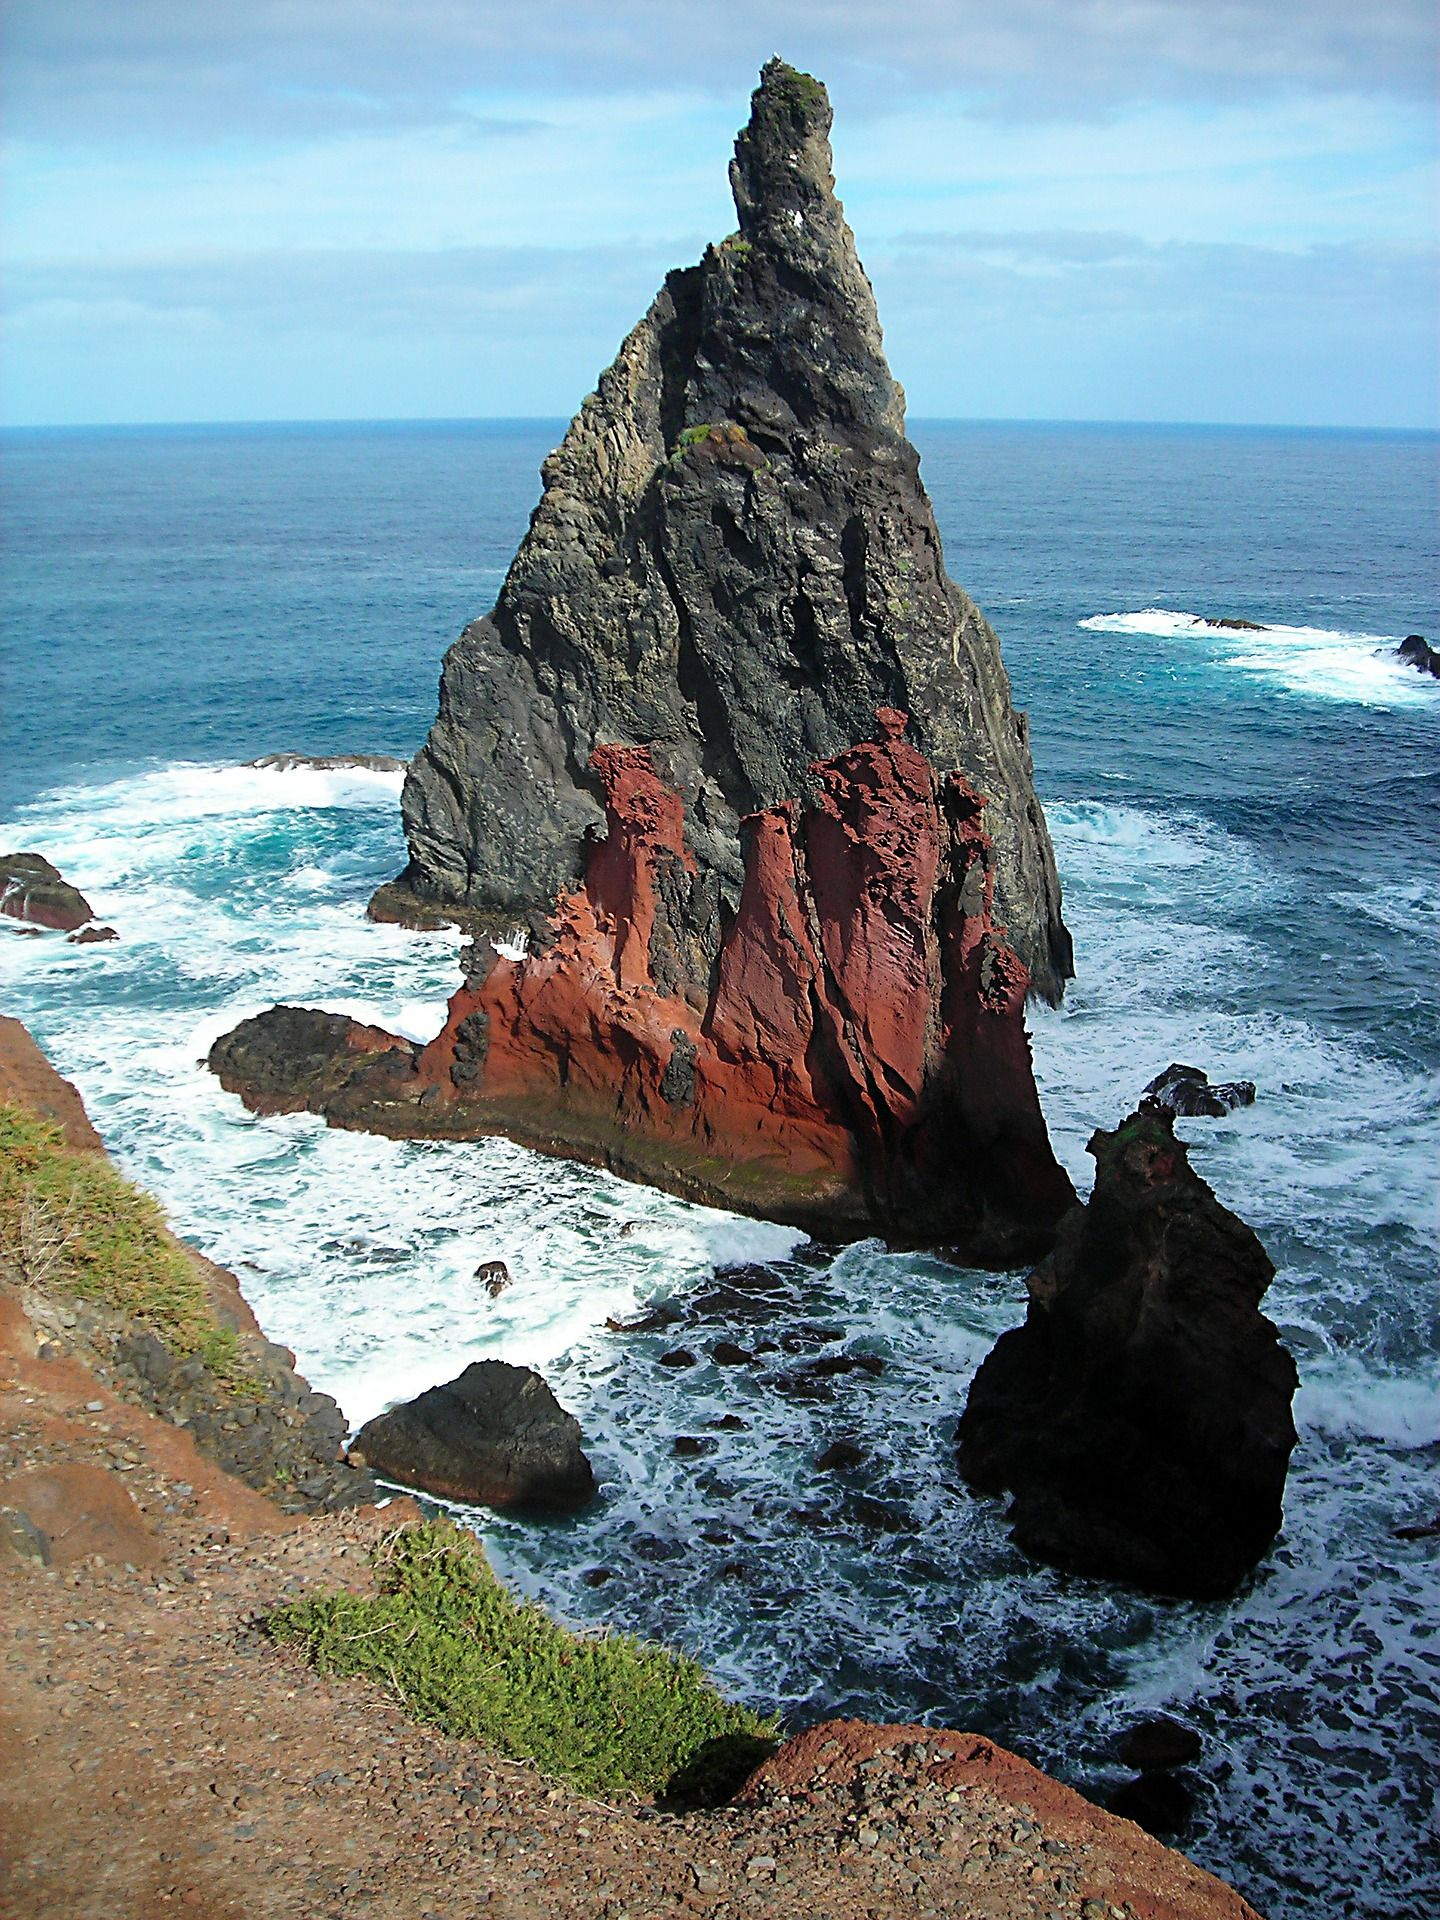 Car hire madeira airport with images best car rental